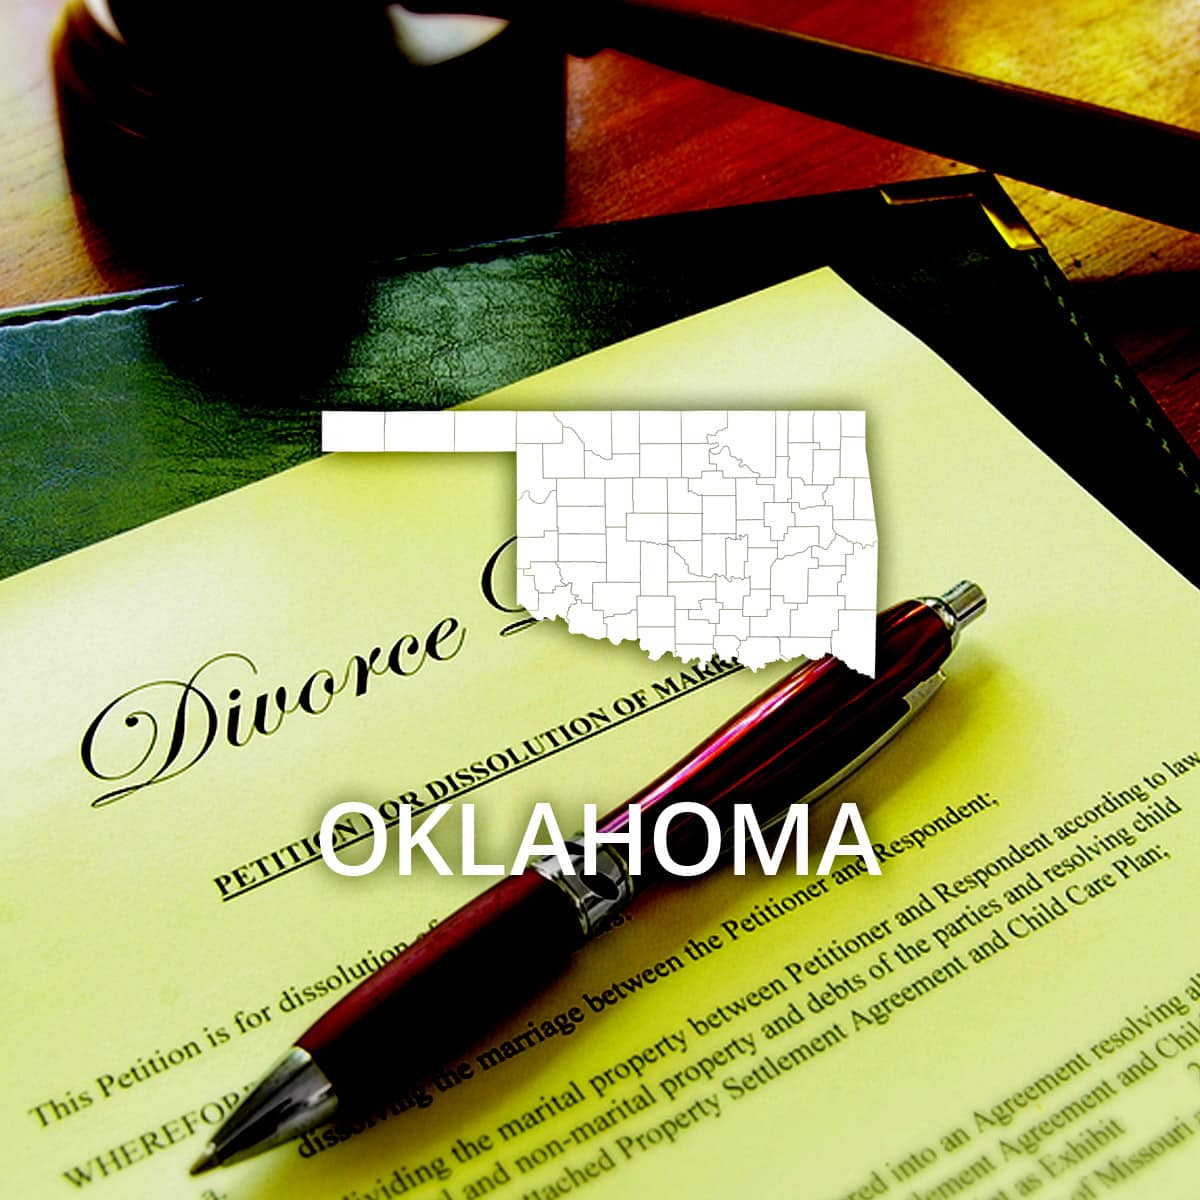 Where to Obtain an Oklahoma Divorce Certificate